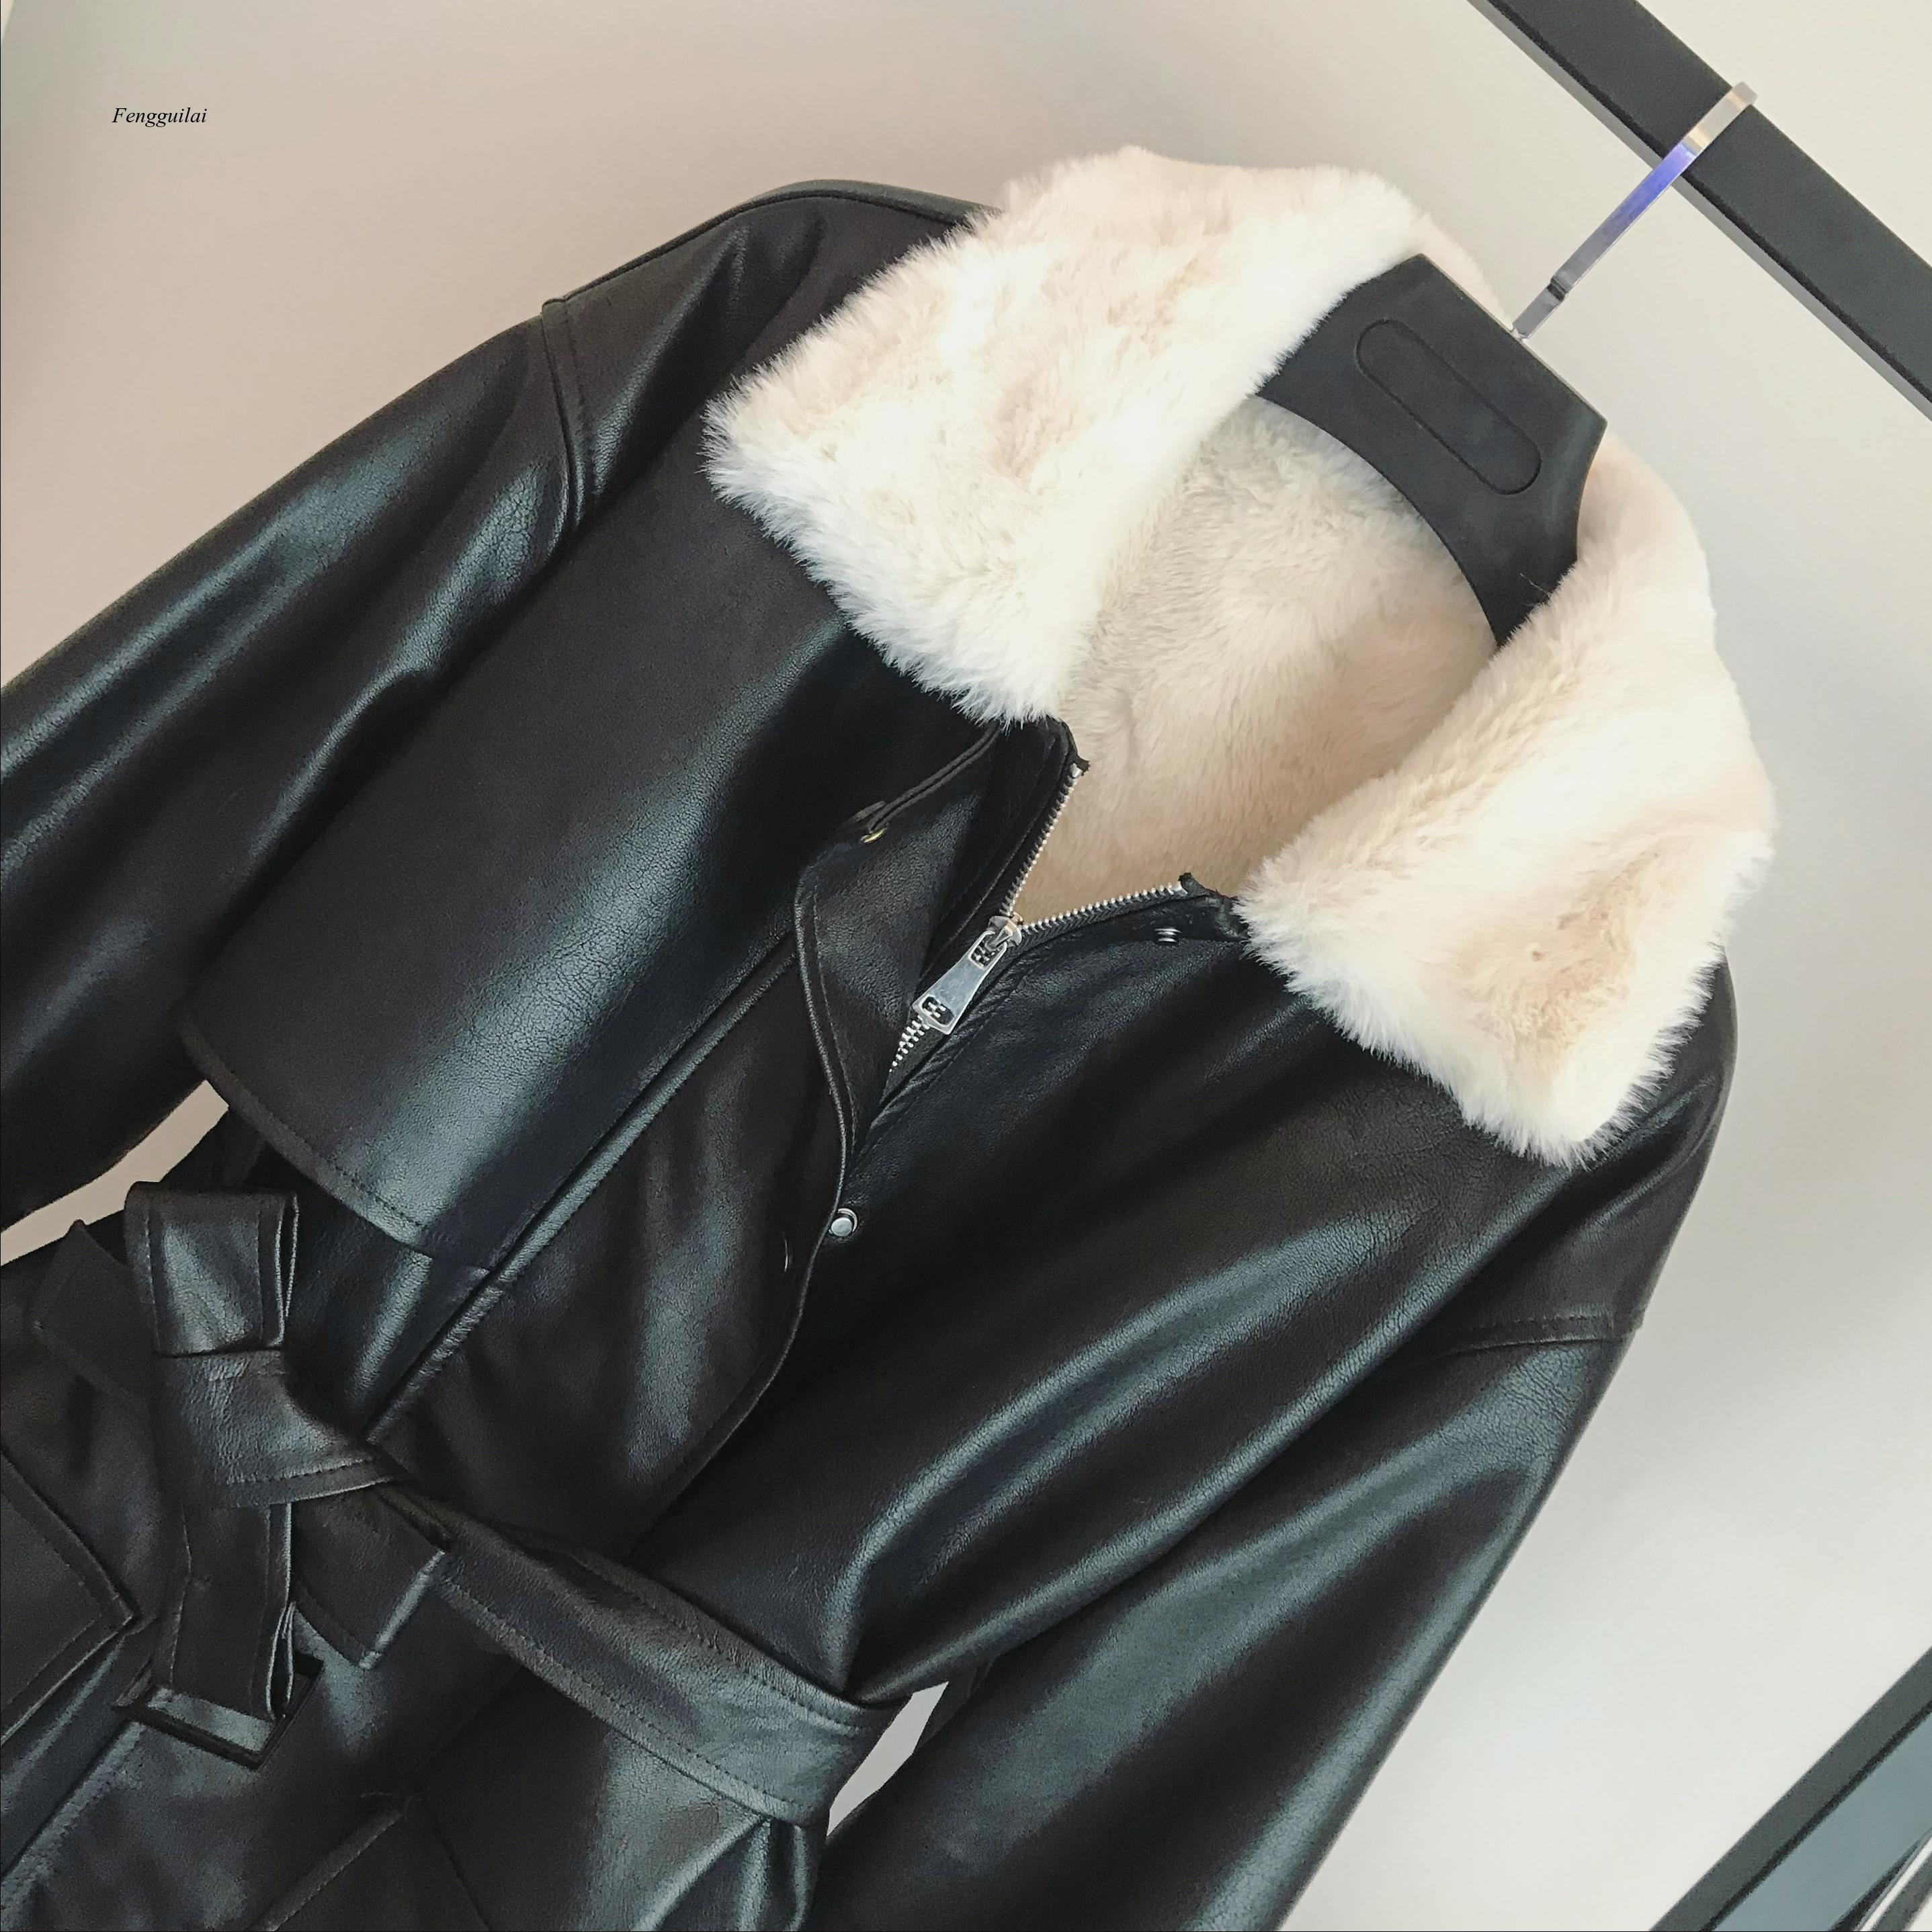 Winter Oversized Leather Jacket Women with Faux Fur Inside Warm Soft Thickened Fur Lined Coat Long Sleeve enlarge